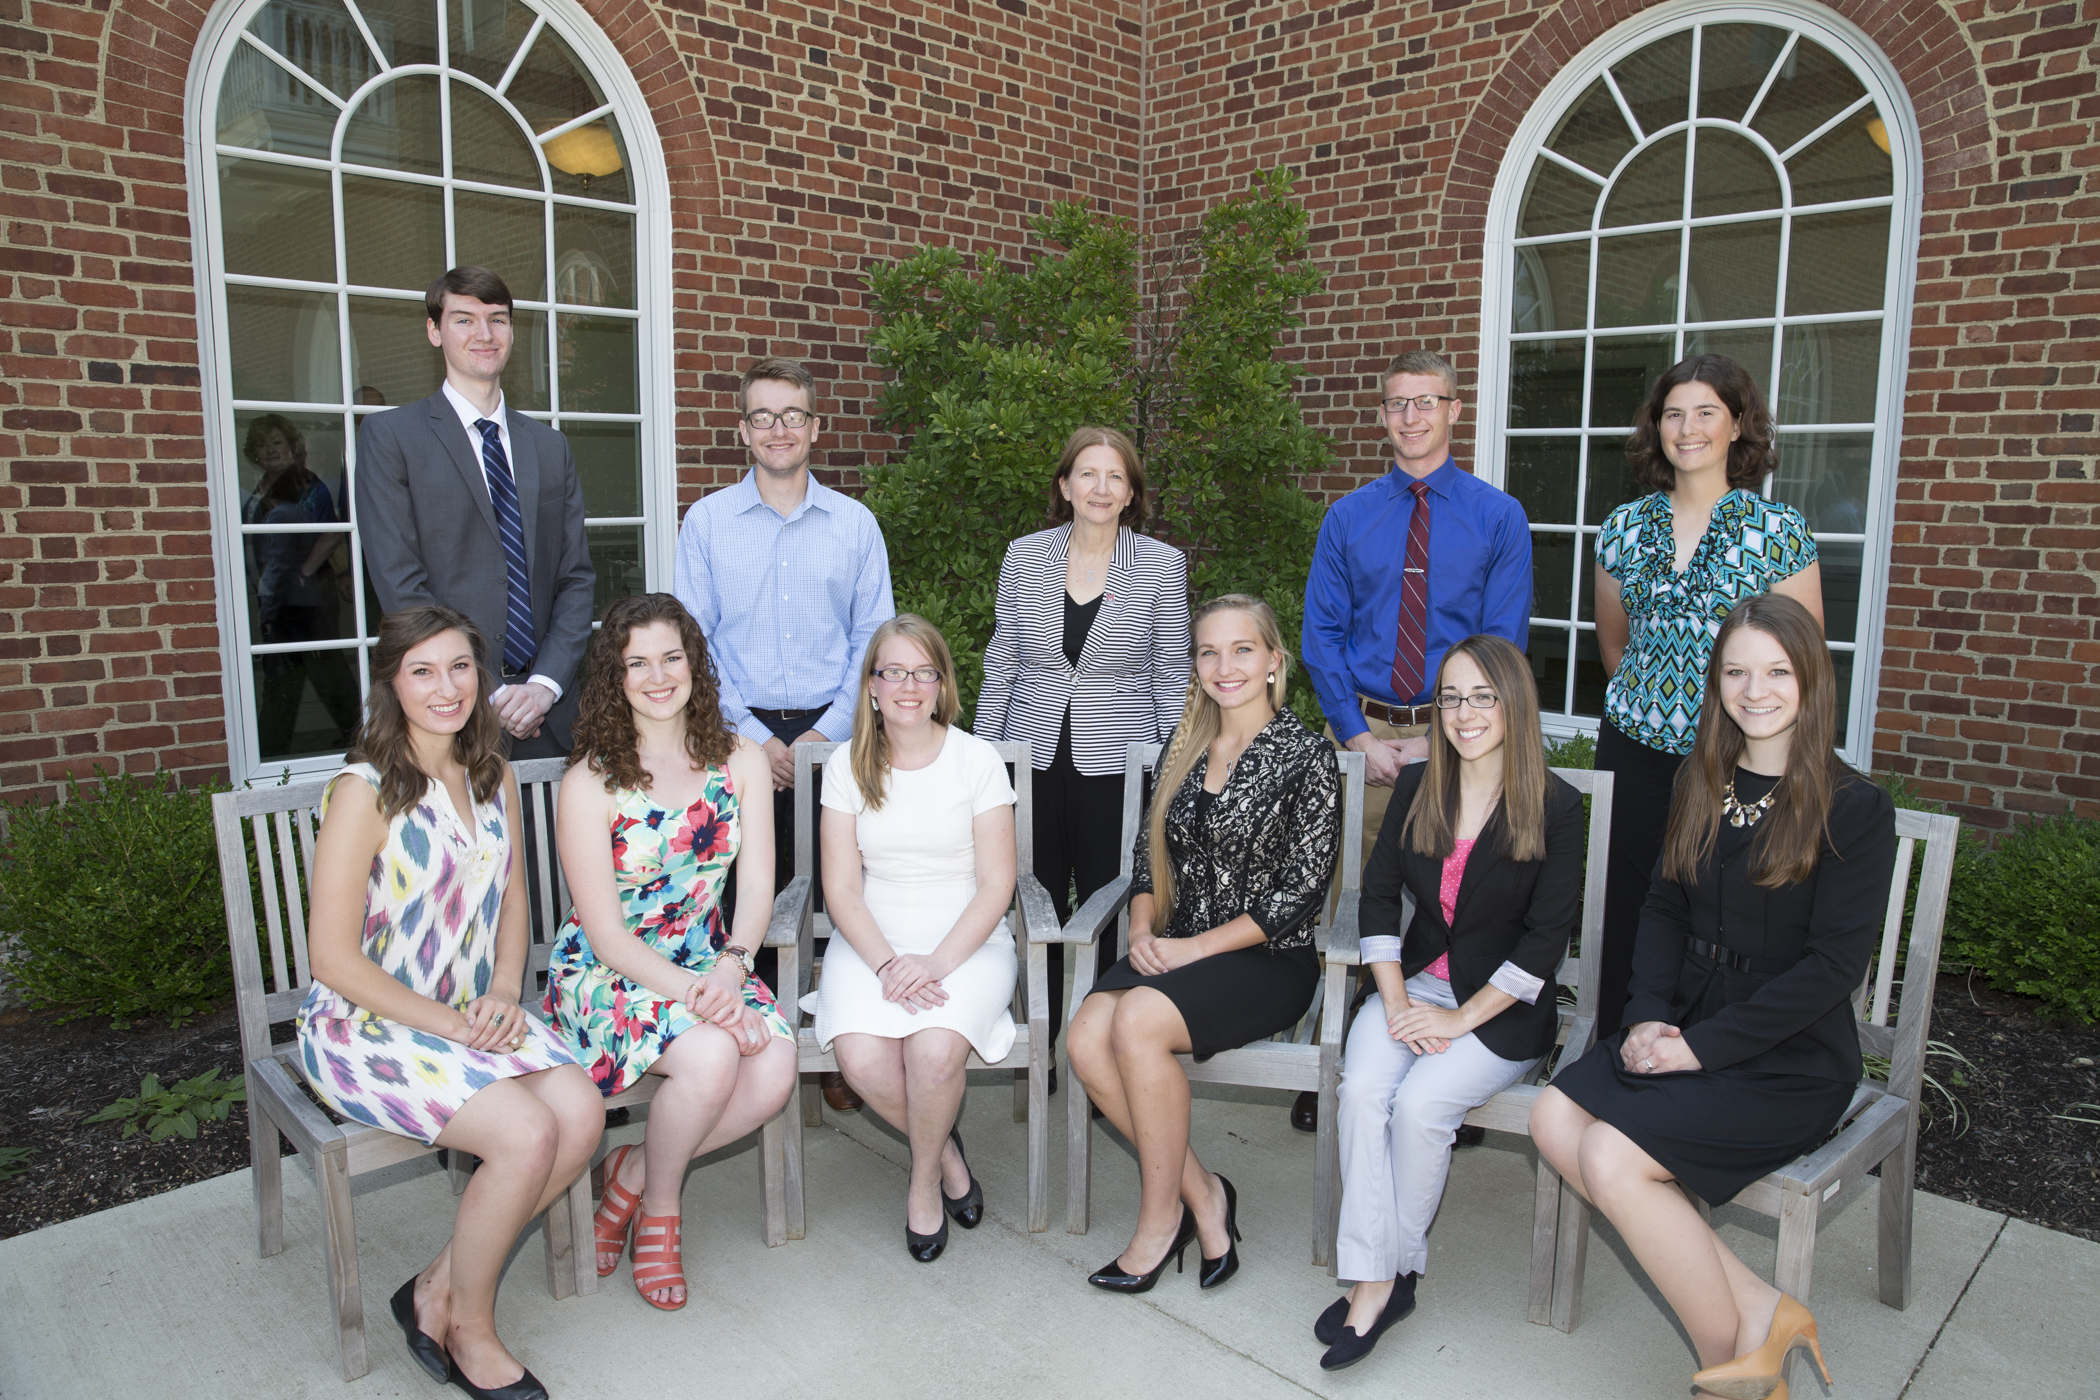 2015 Provost's Student Academic Achievement Award recipients. Top Row (L to R):  Bill Lowe, Eli Thompson, Provost Callahan, Robert Doughty, Sarah Loomis Bottom Row (L to R): Monica Komer, Jessie Motts, Becca Jorgensen, Elizabeth Dimbath, Nora Husani, Madison Weber